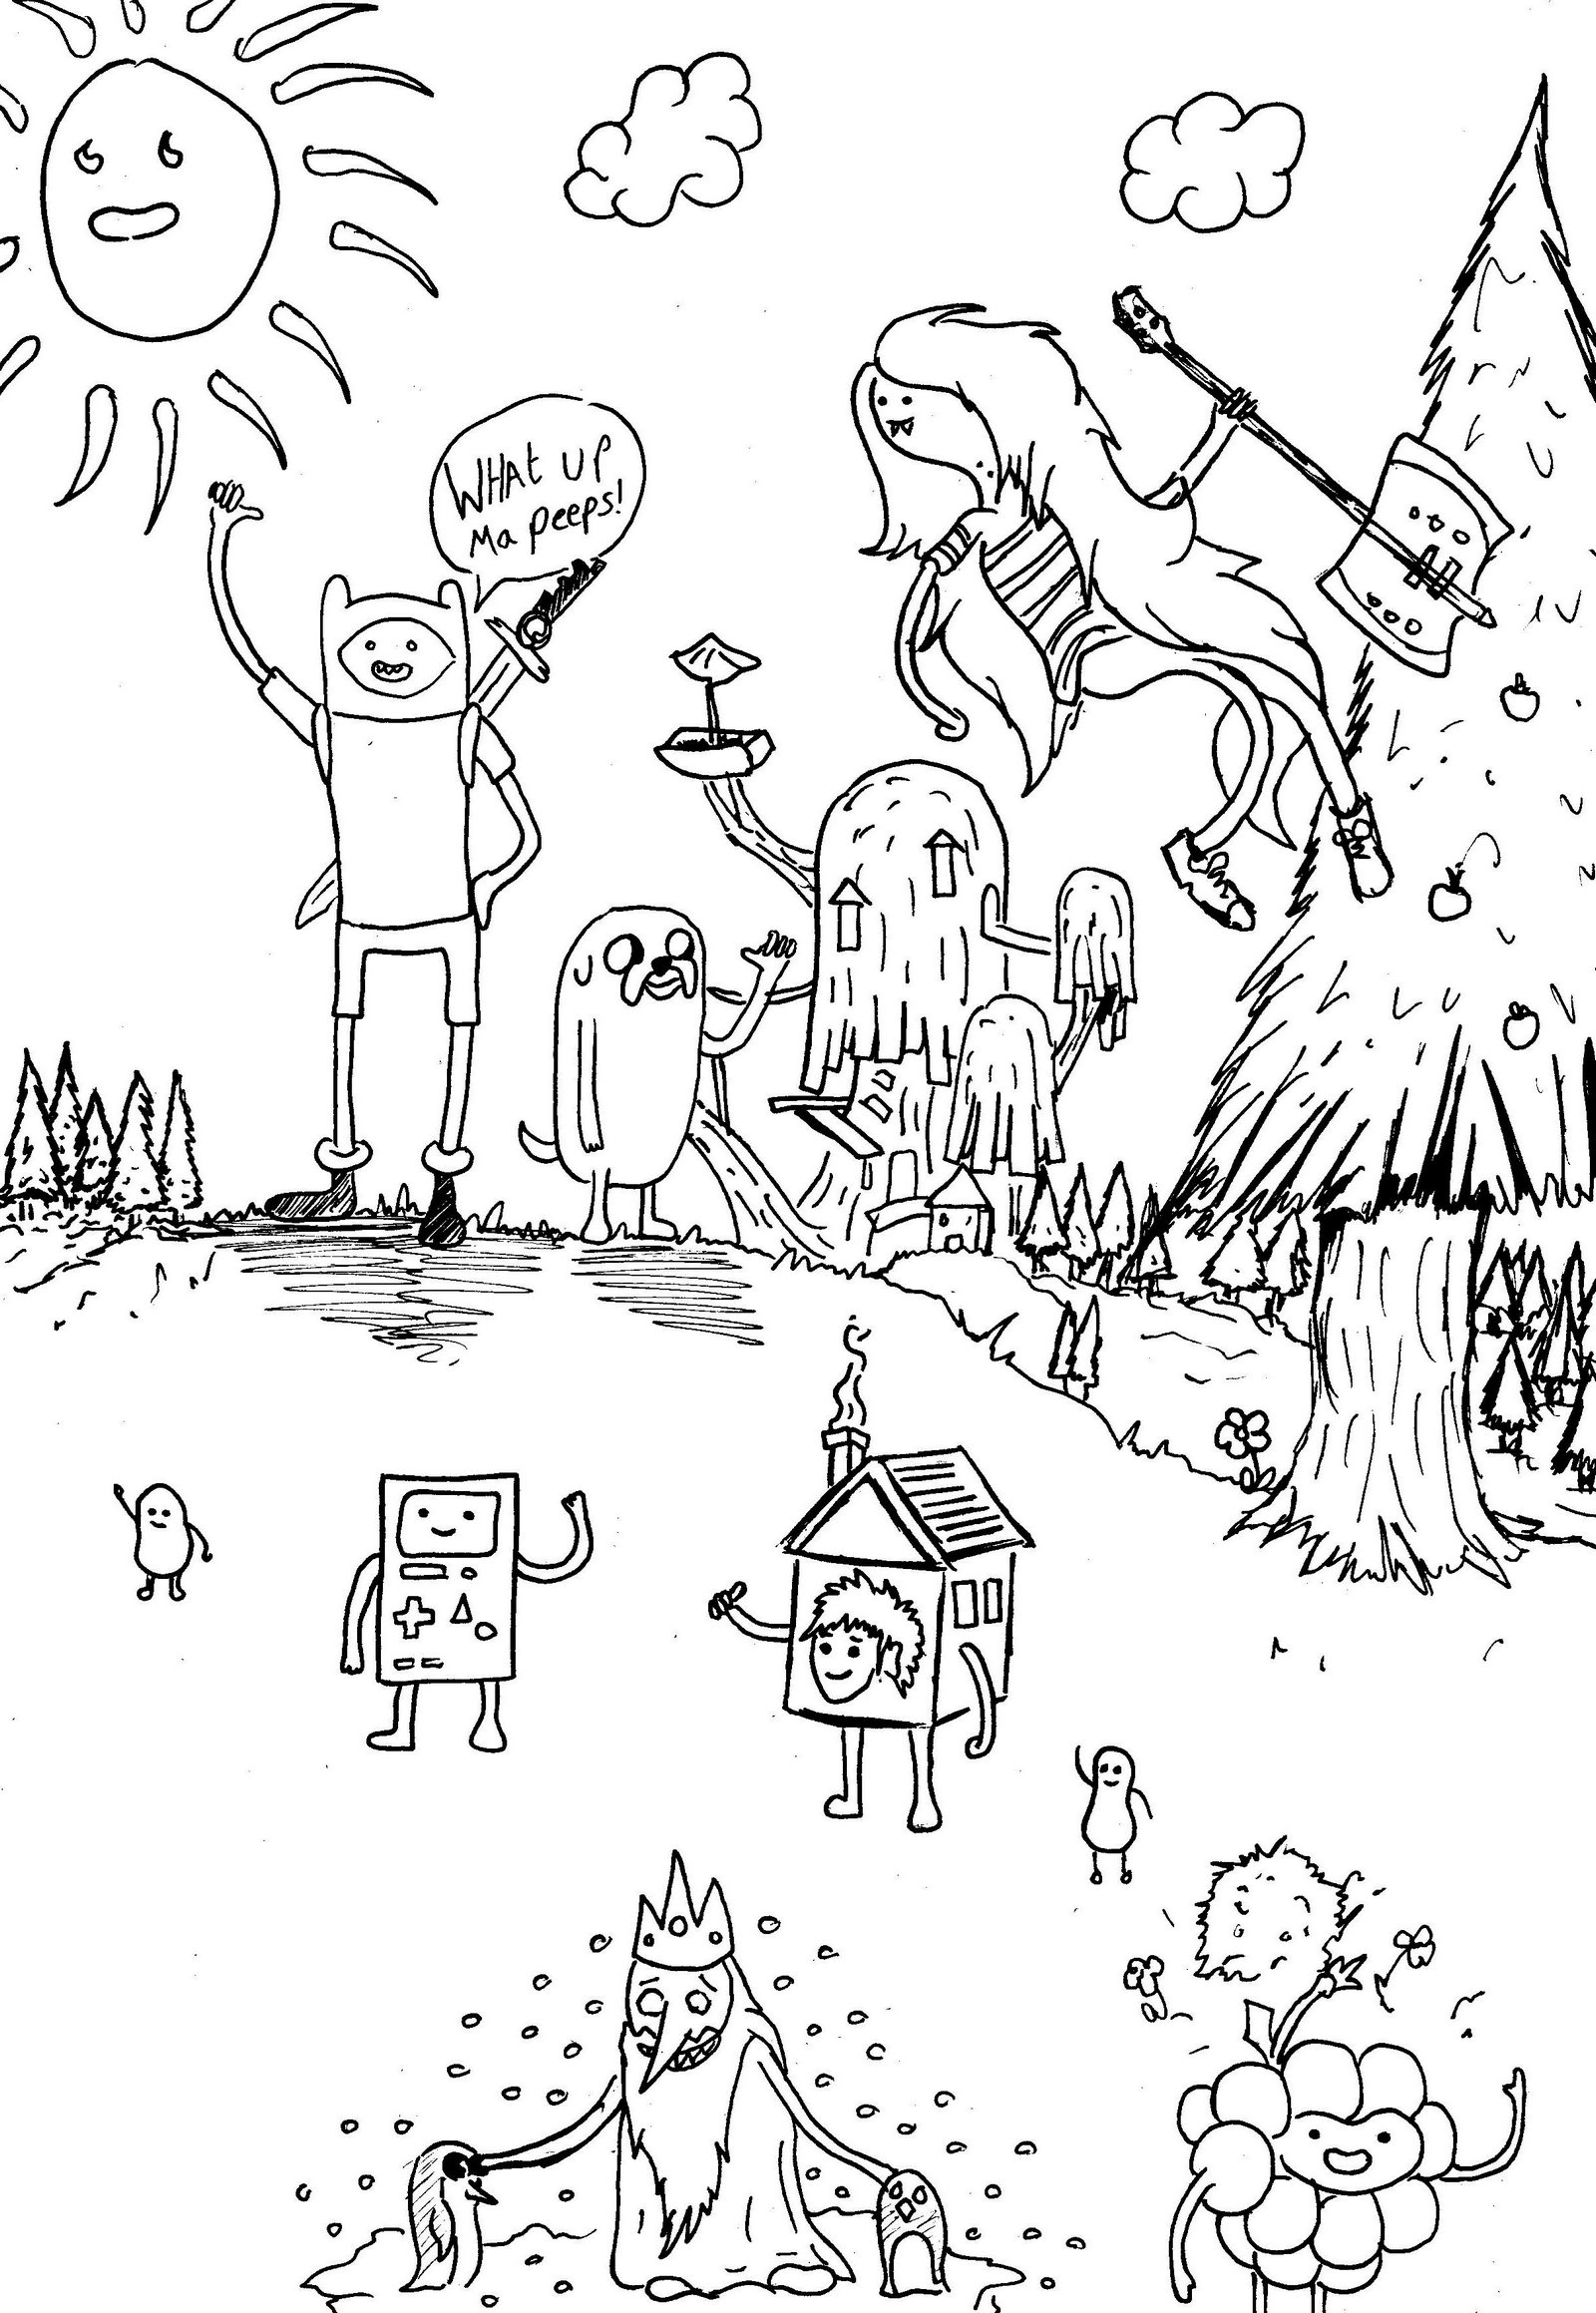 adventure time coloring adventure time doodle cartoon network coloring page coloring time adventure